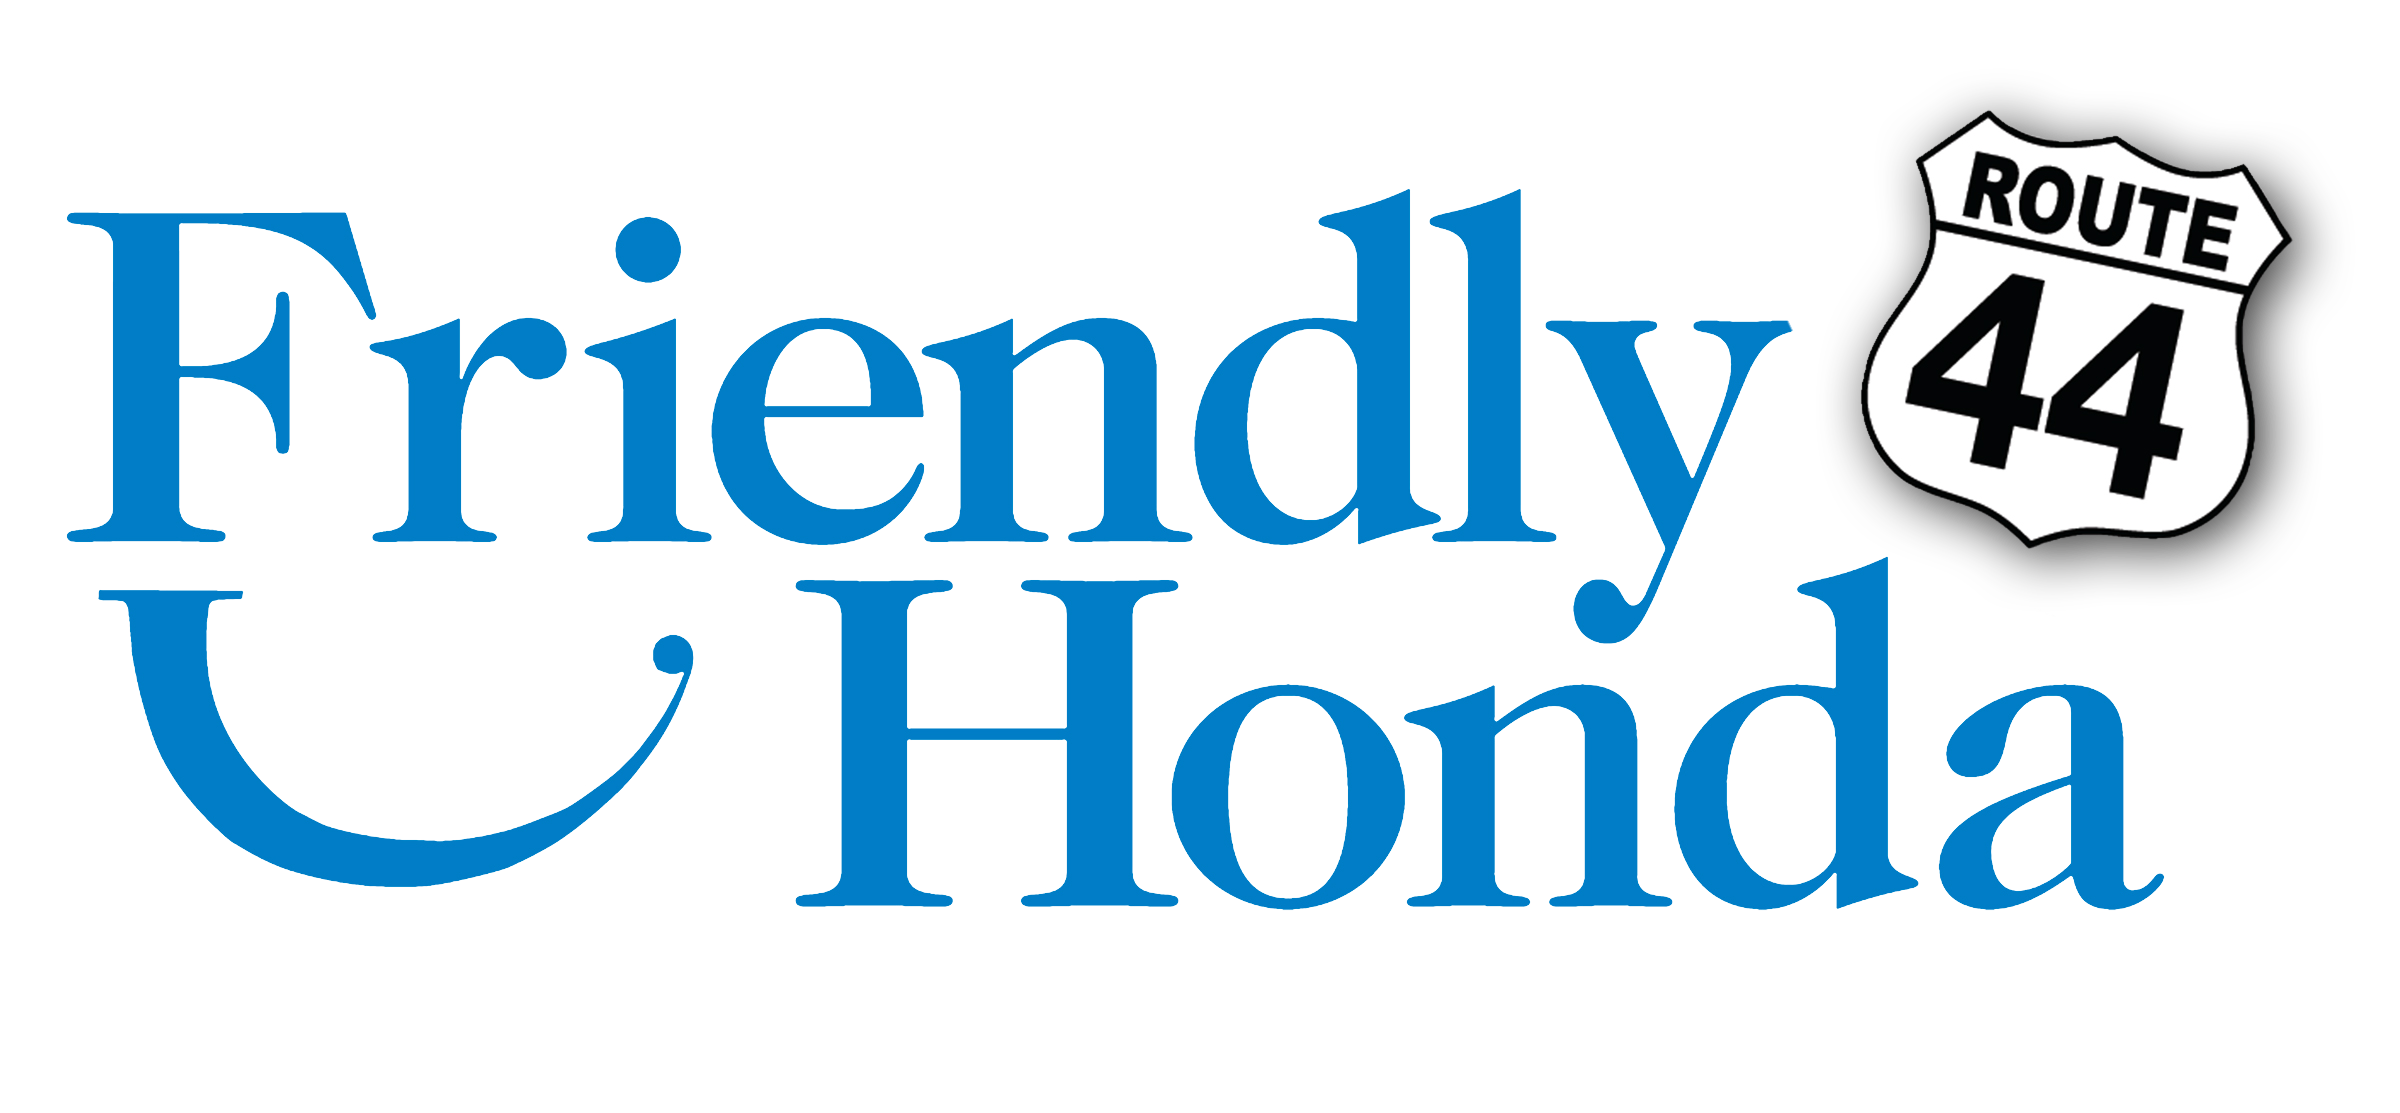 Friendly Honda